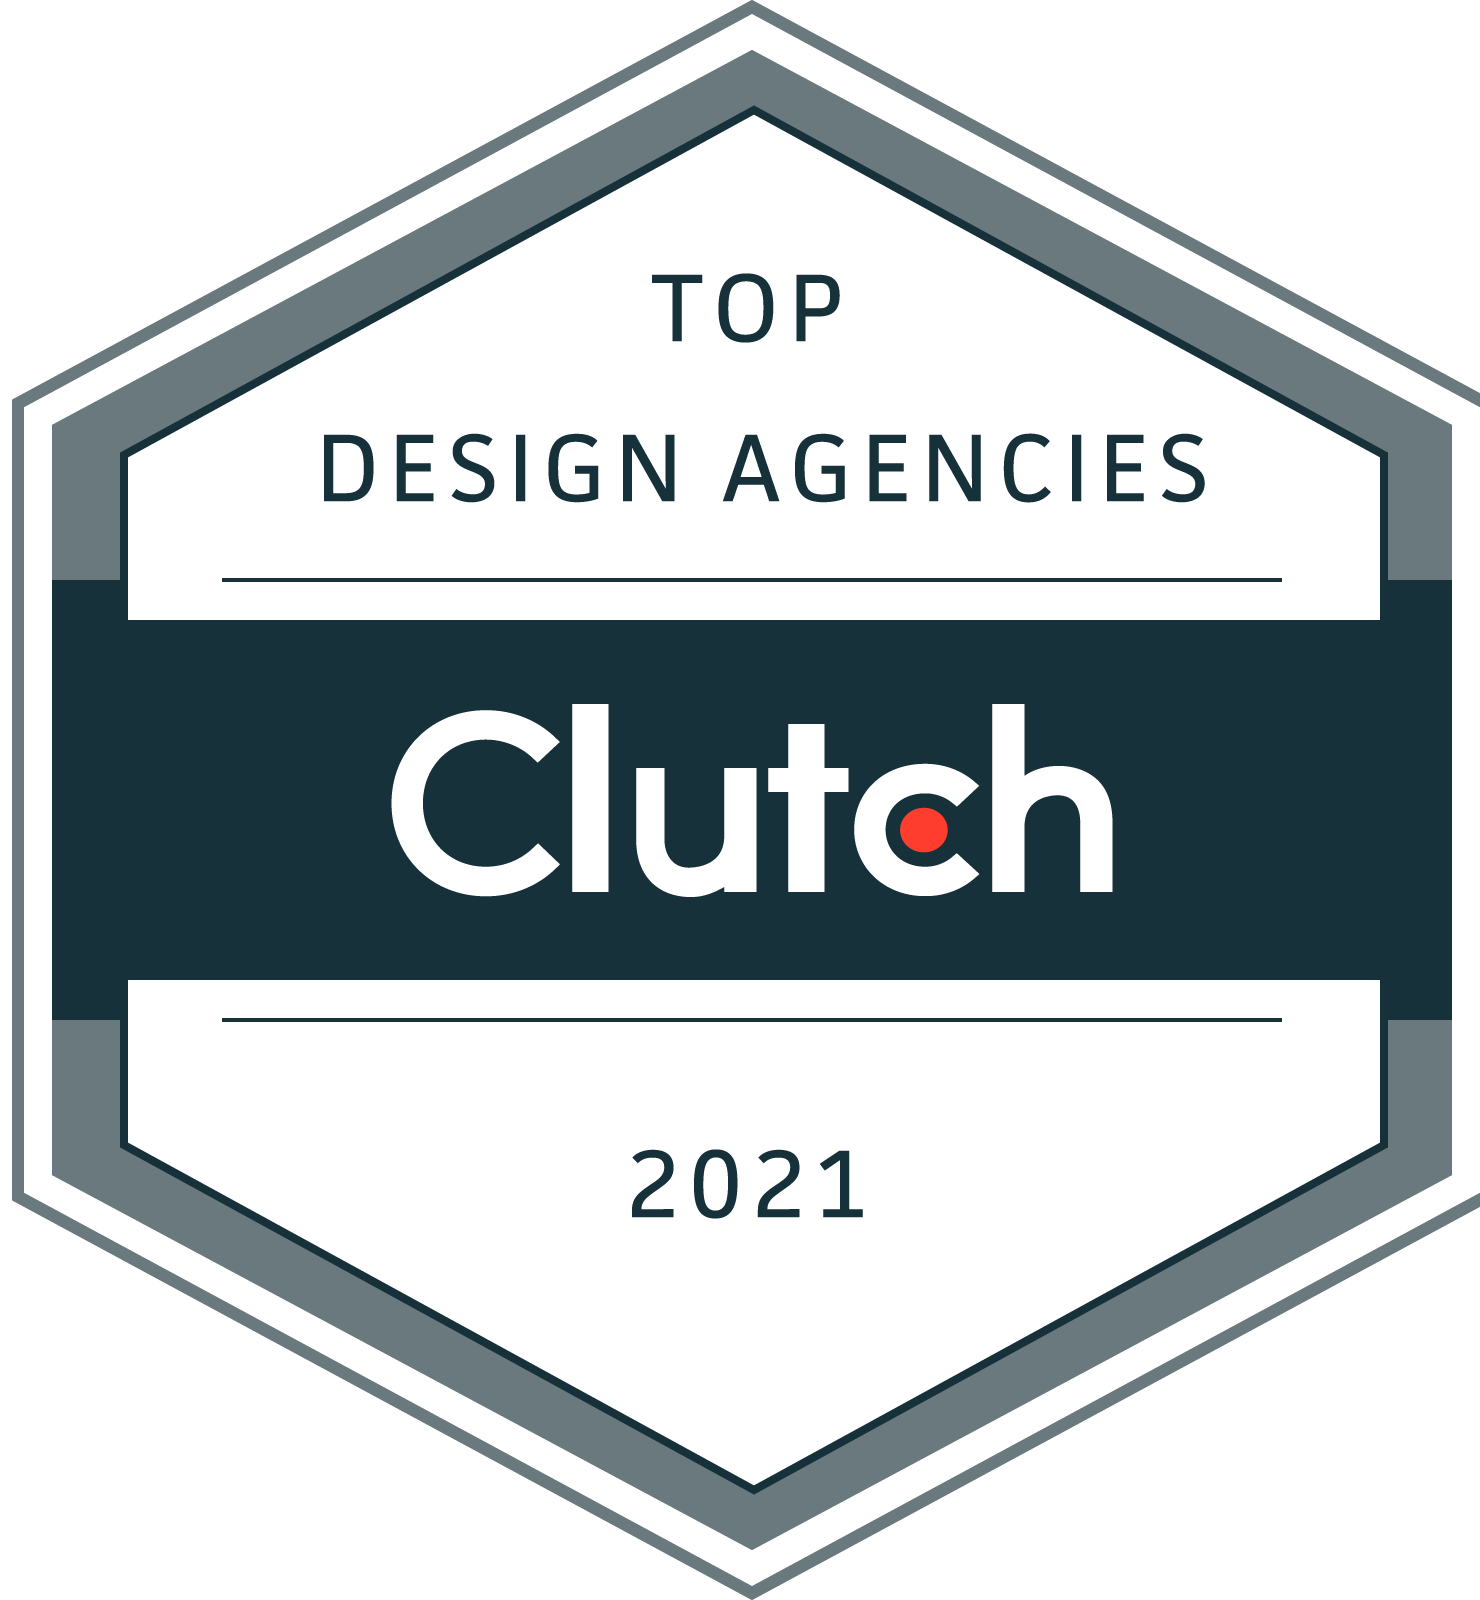 Clutch 2021 top design agency award badge